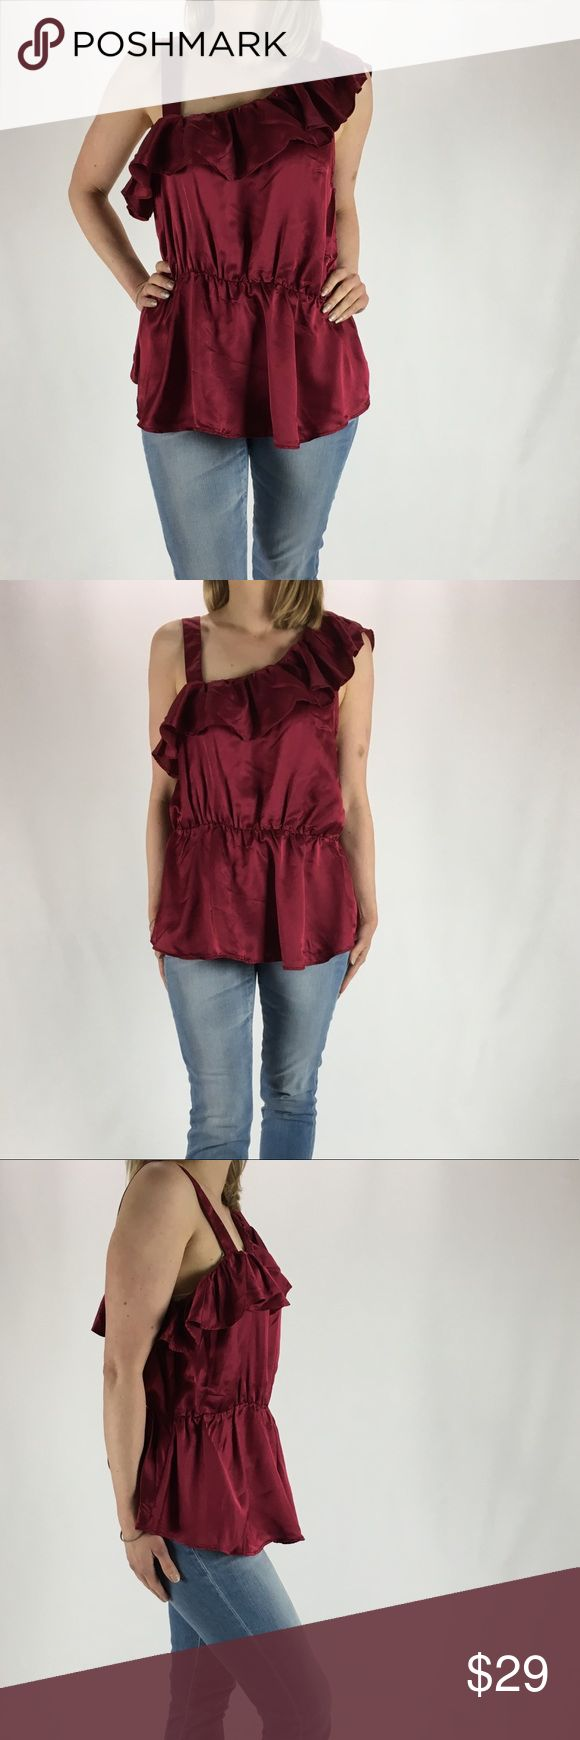 """FRENCH CONNECTION Satin One Shoulder Blouse NWT 12 FRENCH CONNECTION Bordeaux Ruffle One Shoulder Satin Blouse Top - Hidden Side Zipper  Size: 12  Condition: NWT  Fabric: Lyocell/Viscose/Rayon MEASUREMENTS UNSTRETCHED:  Armpit to armpit 18.5""""  Length 24"""" French Connection Tops Blouses"""